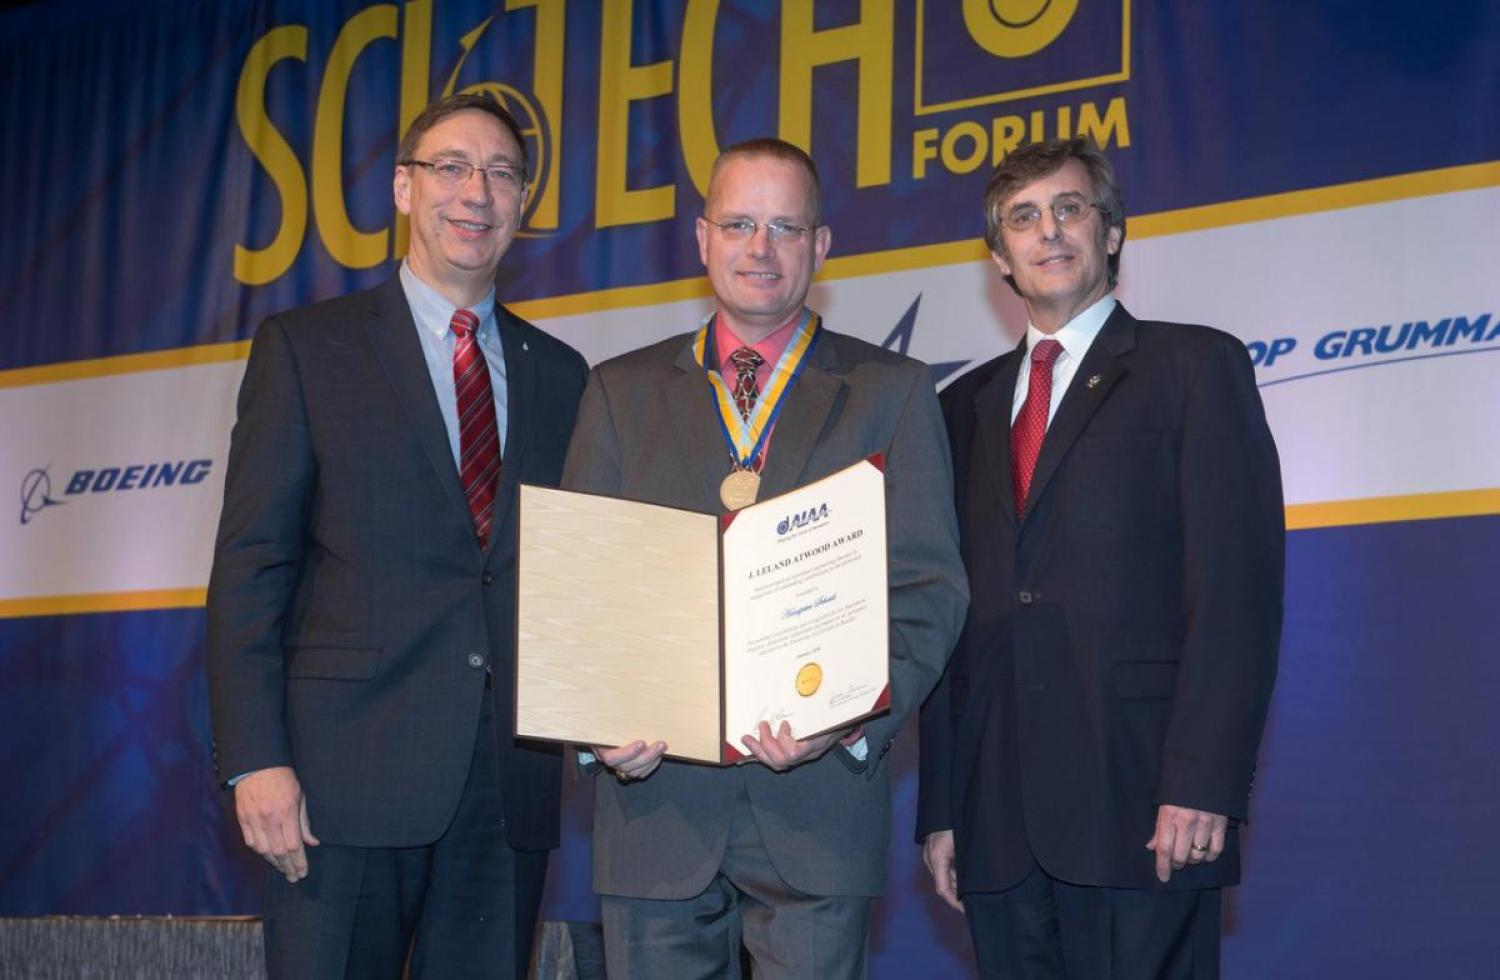 Professor Hanspeter Schaub has been named Collegiate Educator of the Year!